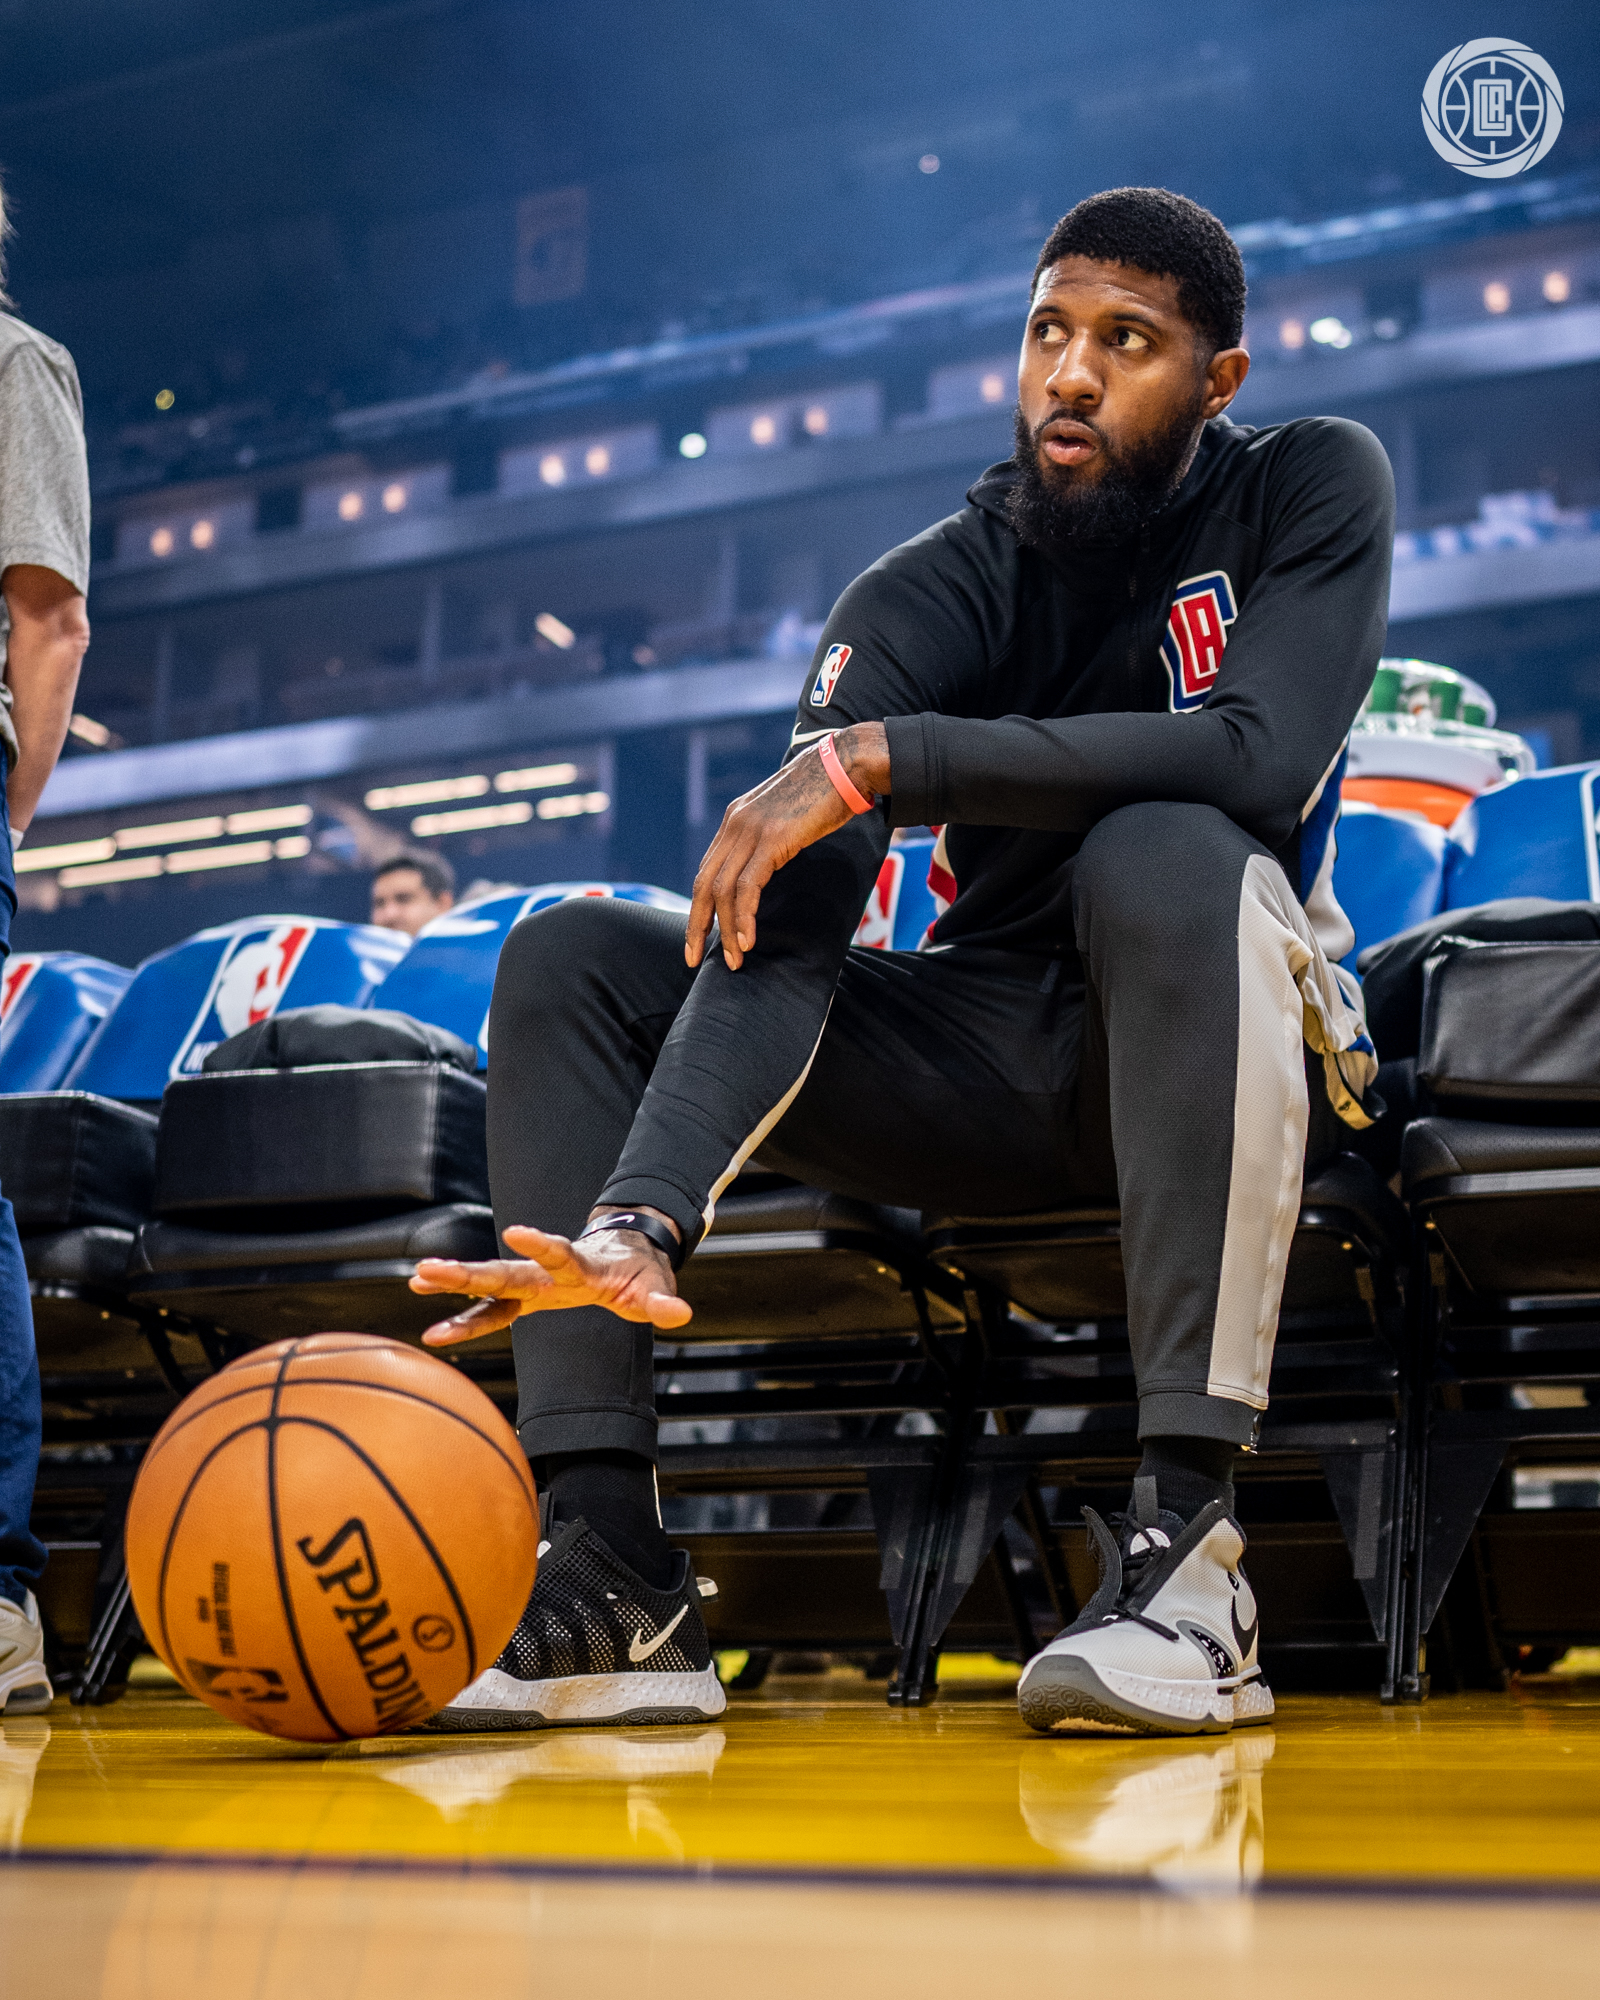 It's Official: Paul George is Underrated.